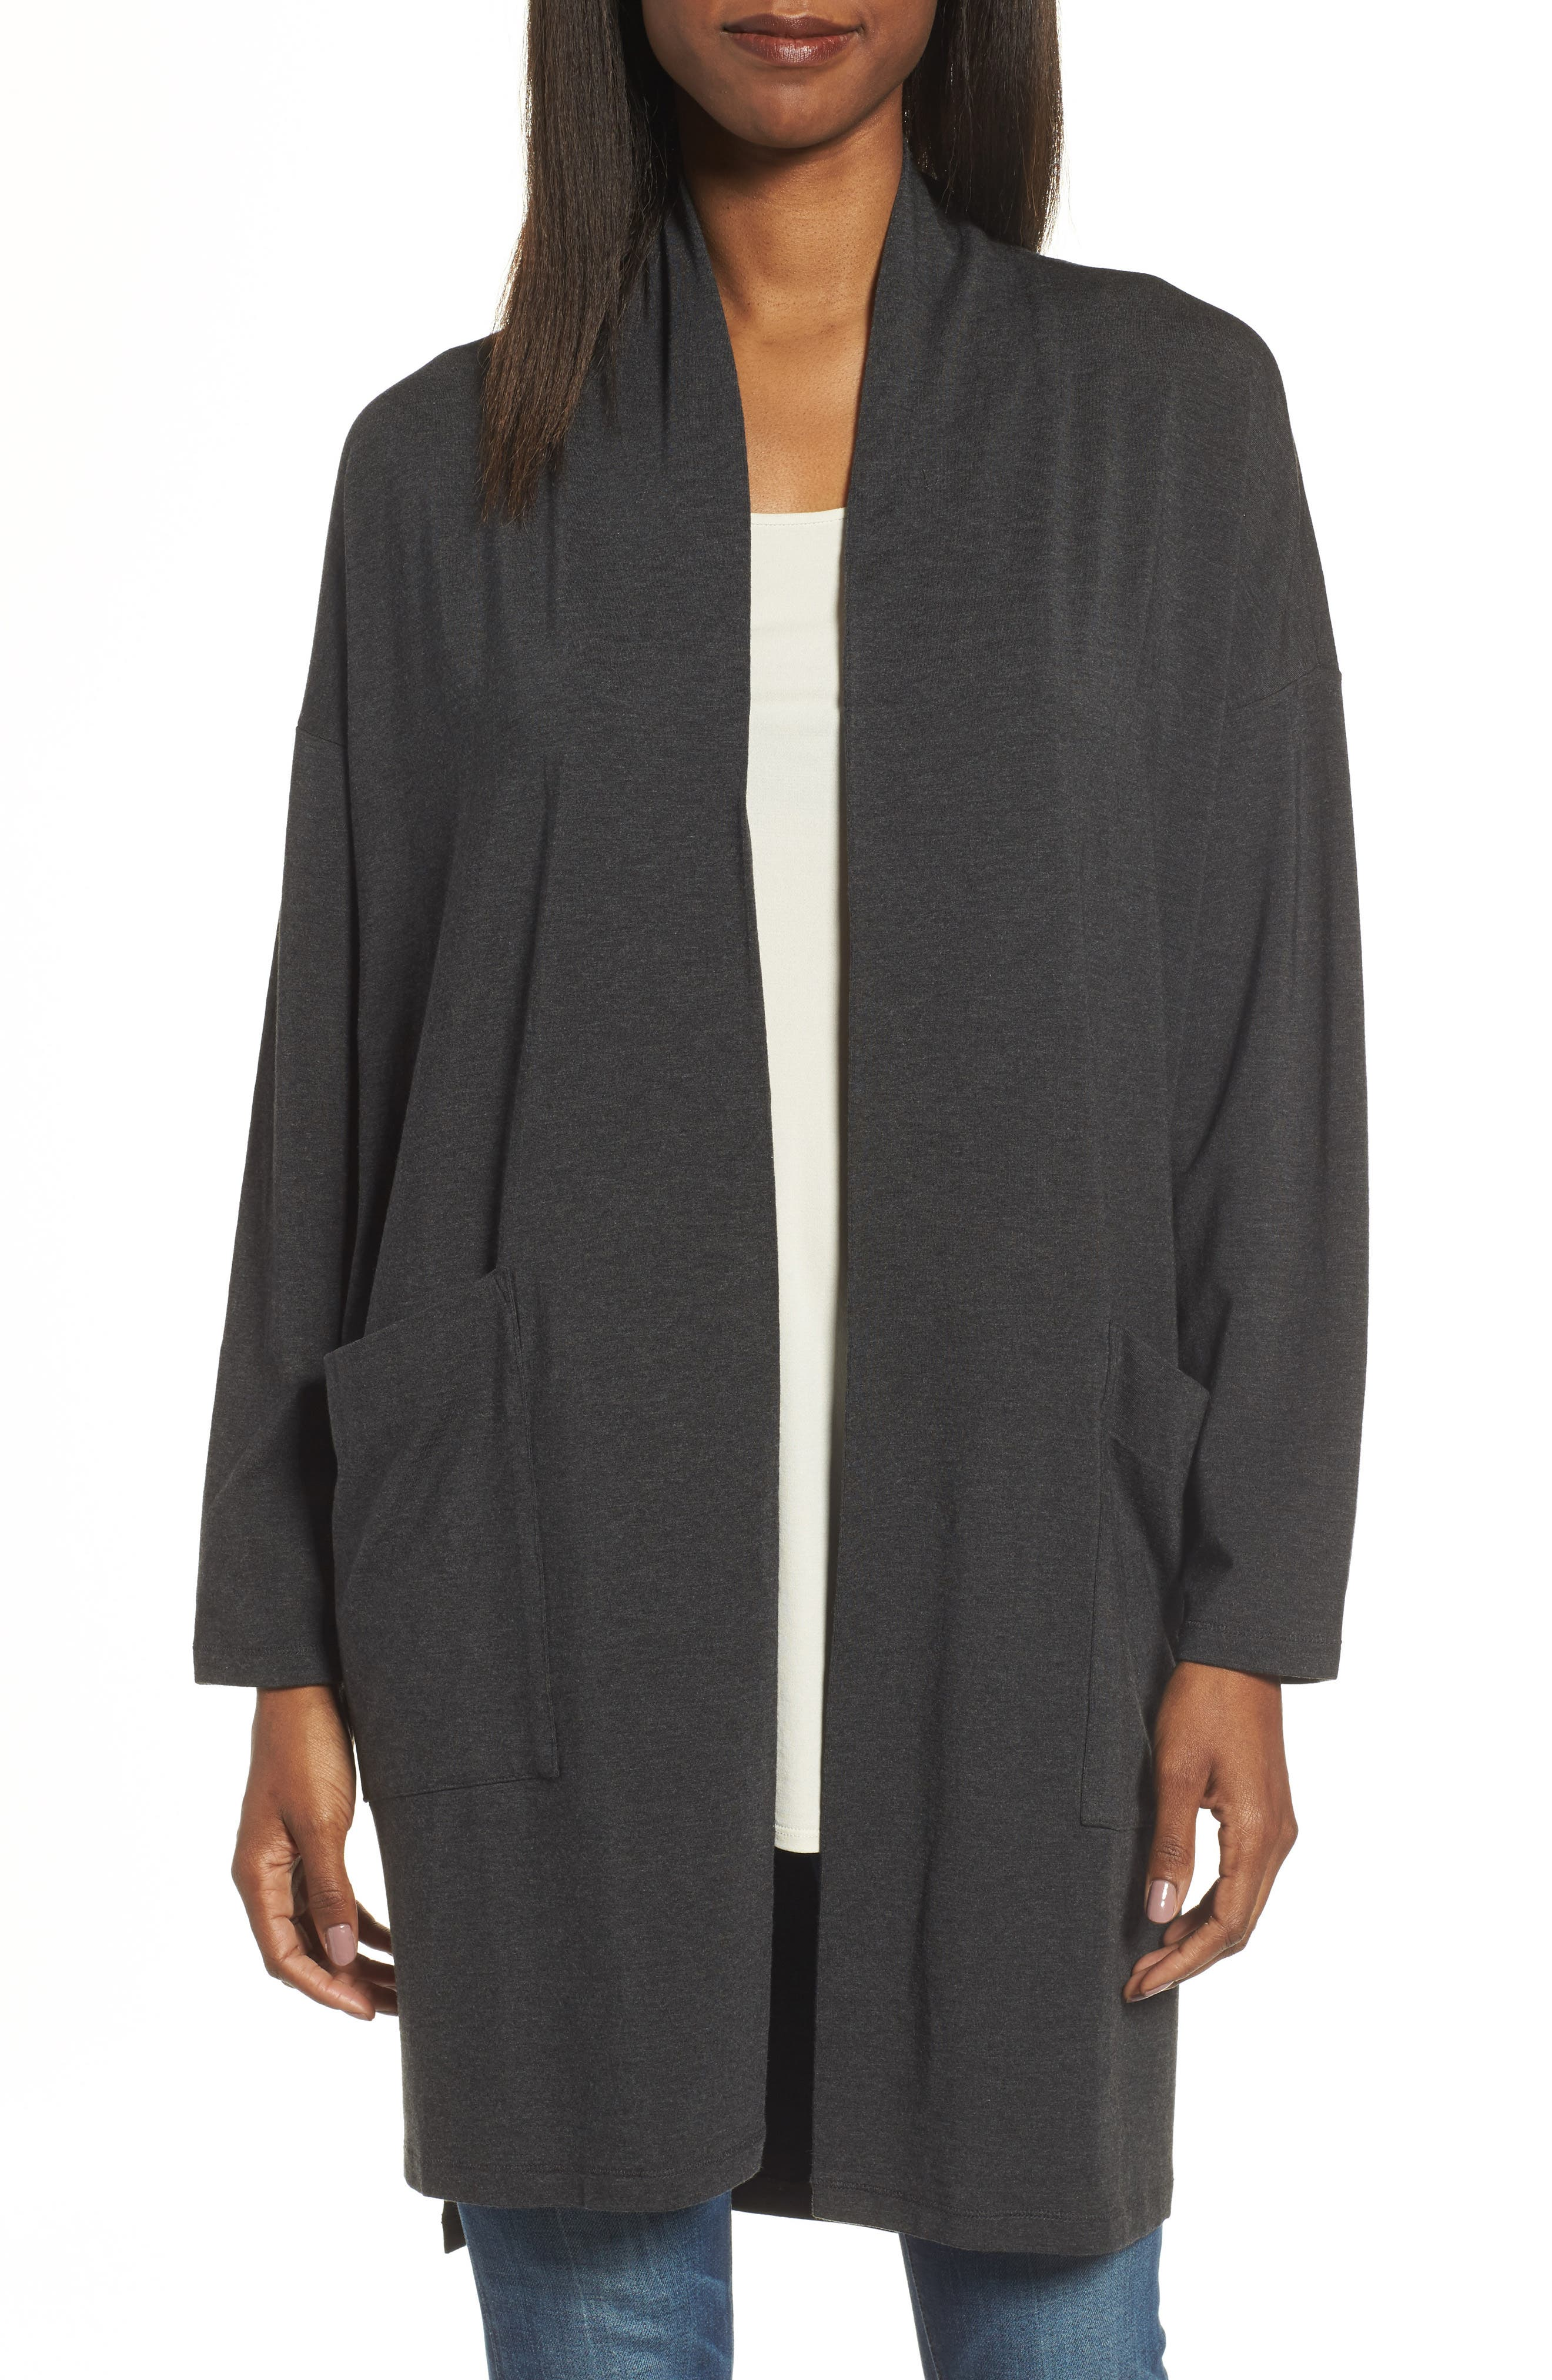 Alternate Image 1 Selected - Eileen Fisher Stretch Tencel® Lyocell Kimono Cardigan (Regular & Petite)